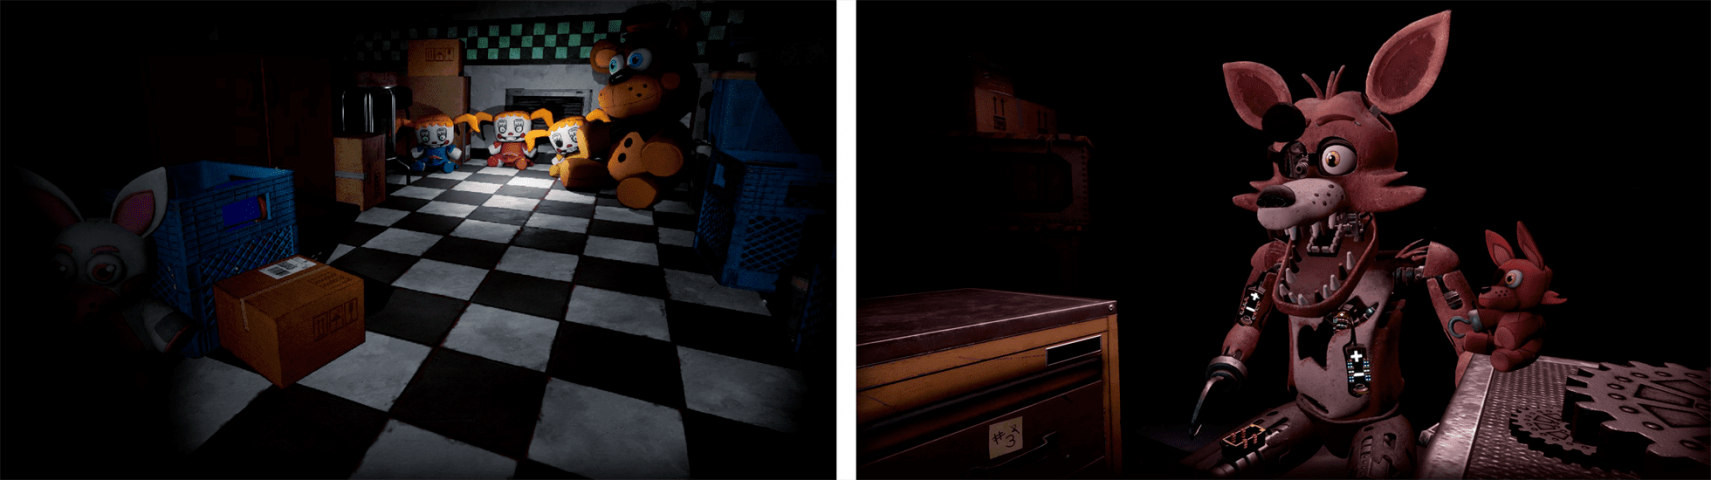 fnaf-help-wanted.png